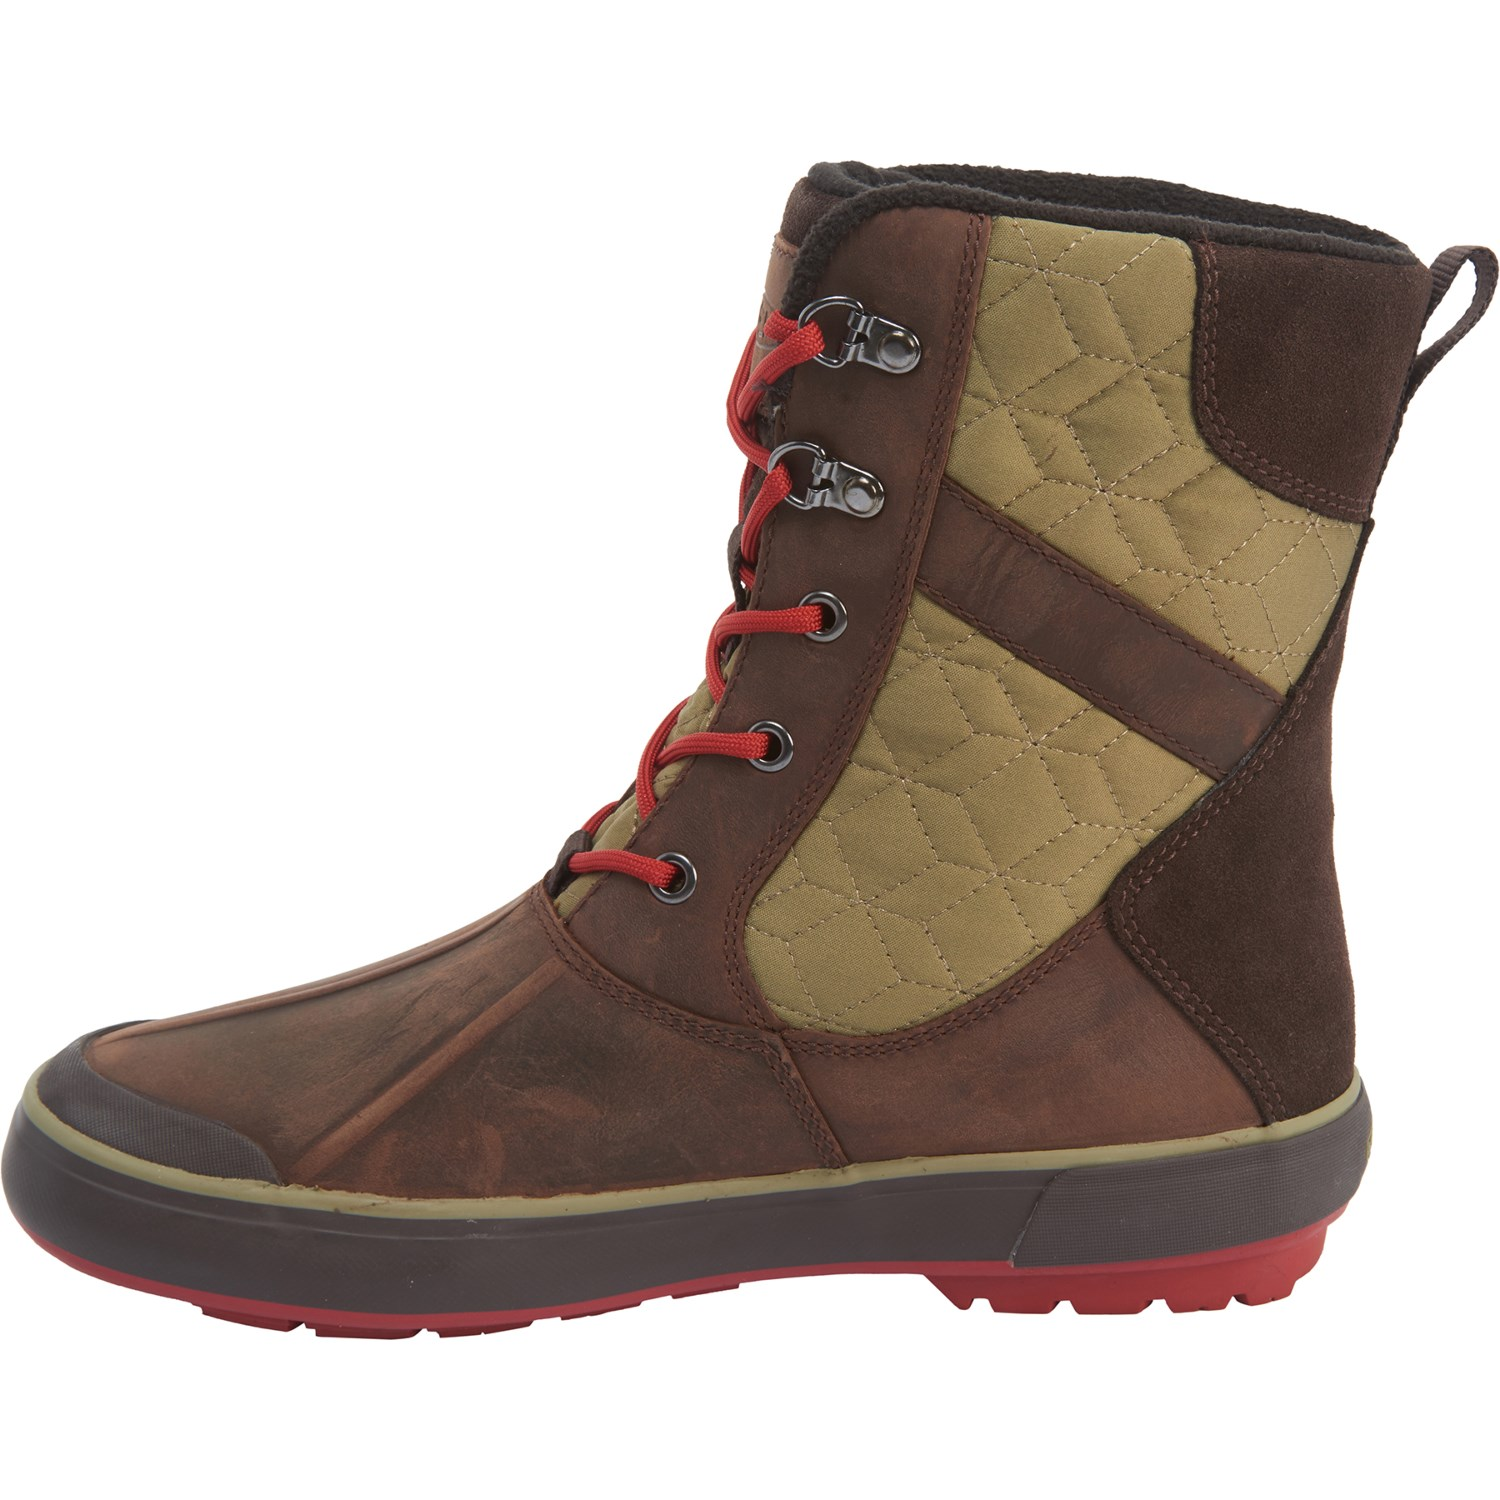 Keen Elsa II Quilted Boots (For Women